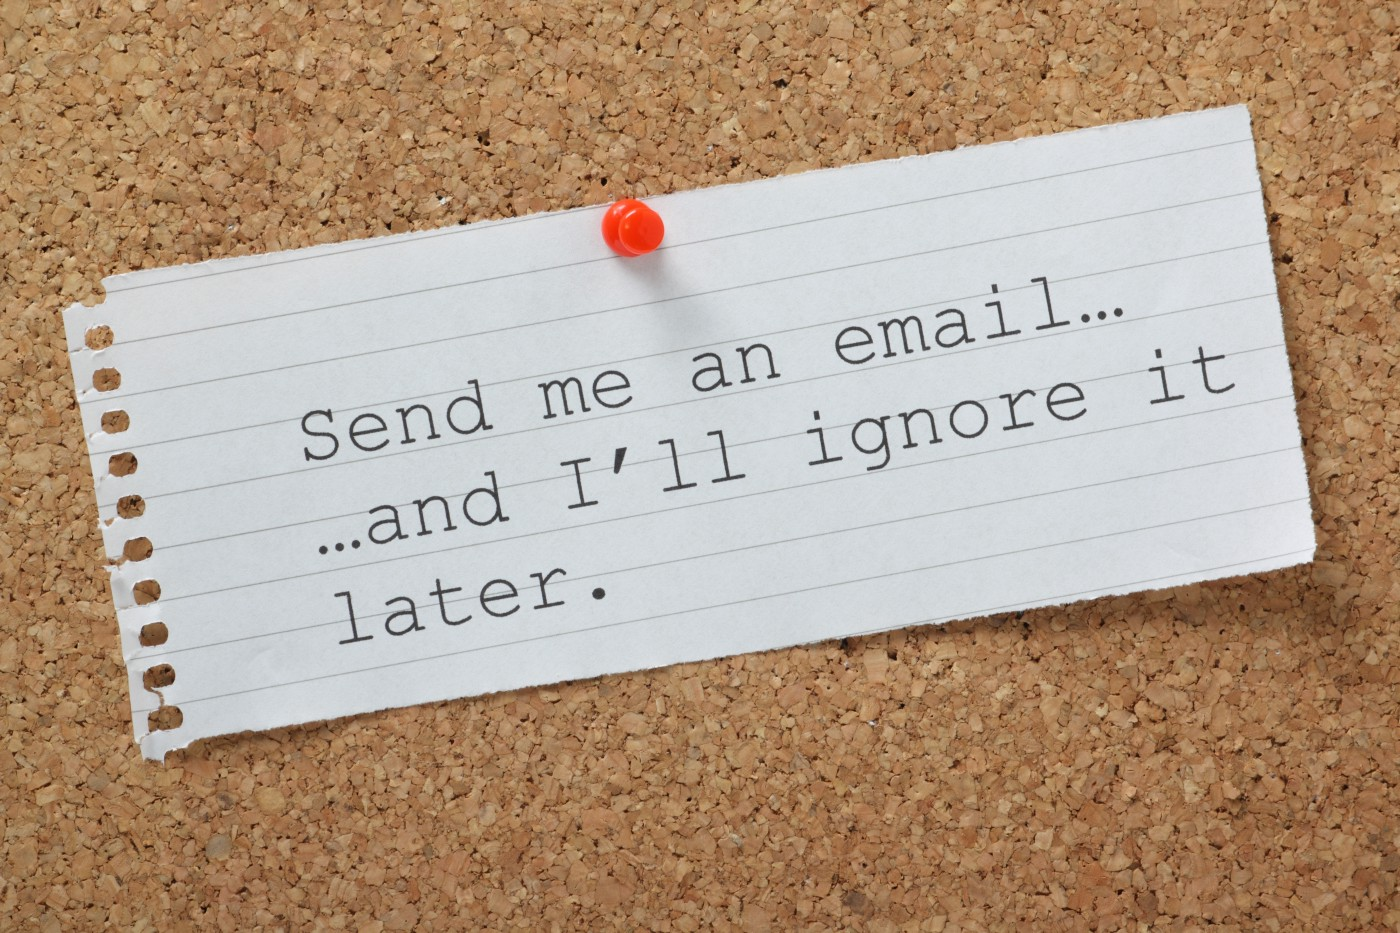 Send me an email and I'll ignore it later